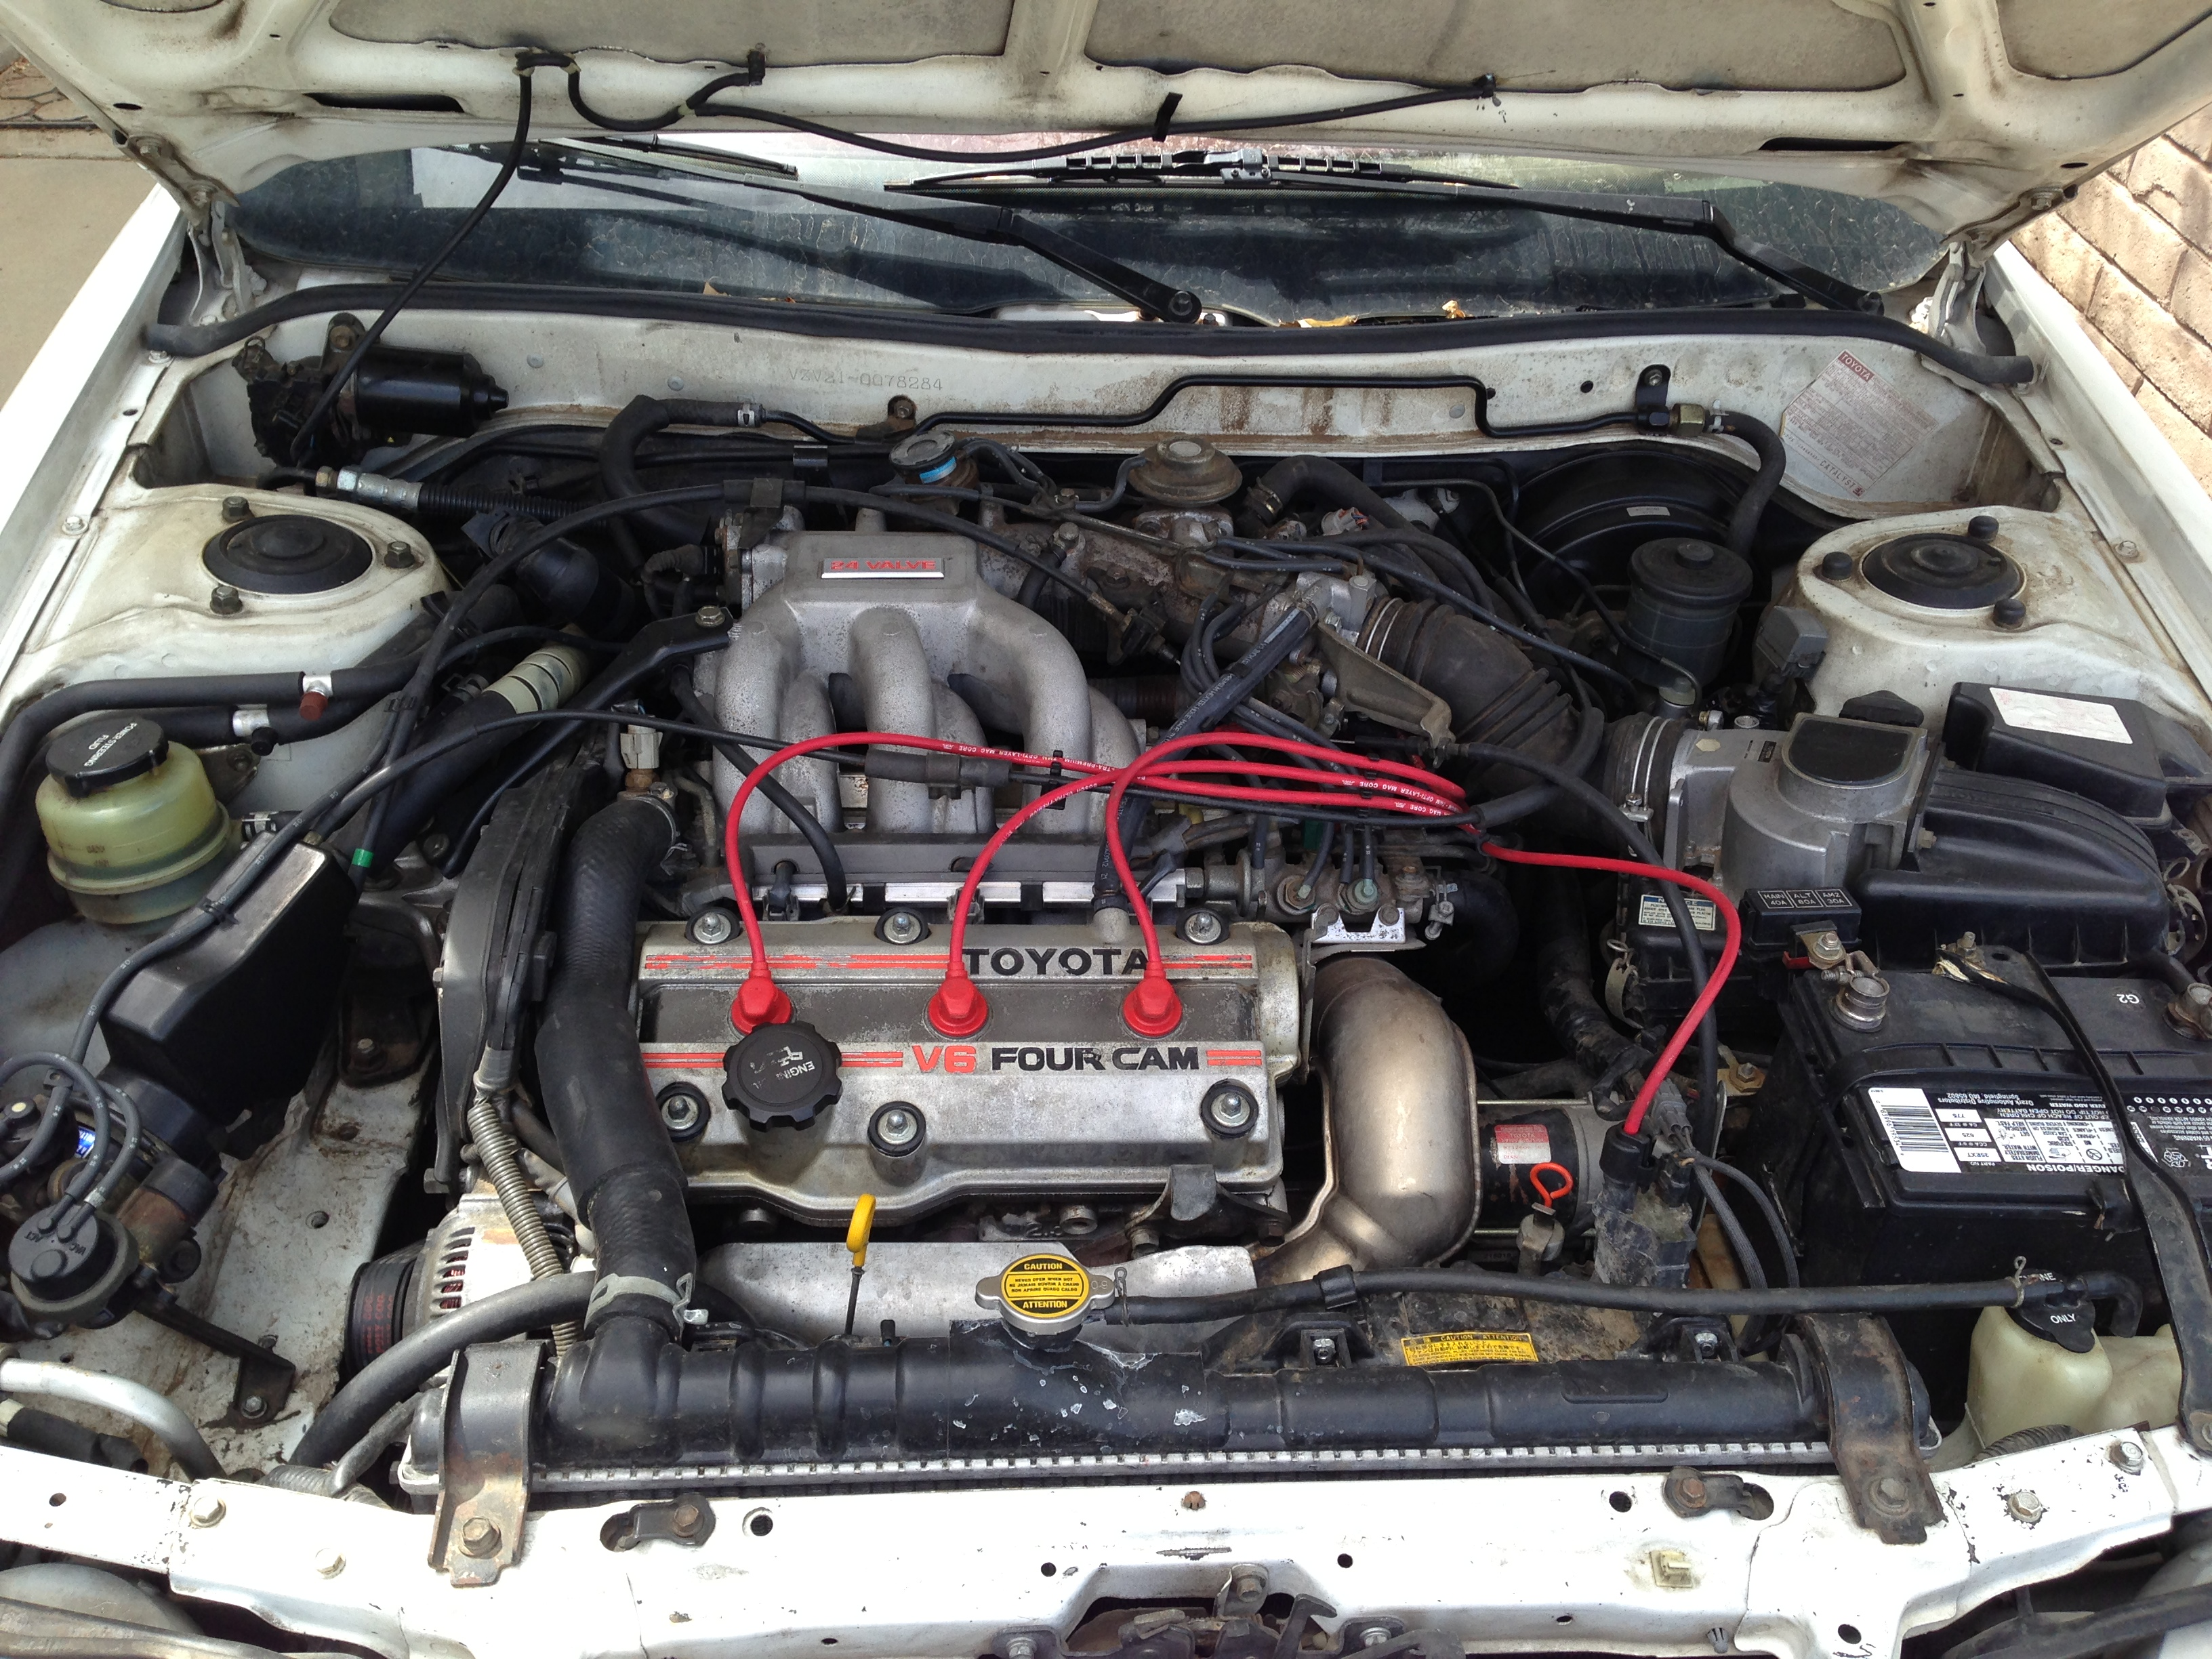 1994 toyota 4runner engine compartment 1994 engine problems and 1998 toyota 4runner cylinder diagram at aneh.co